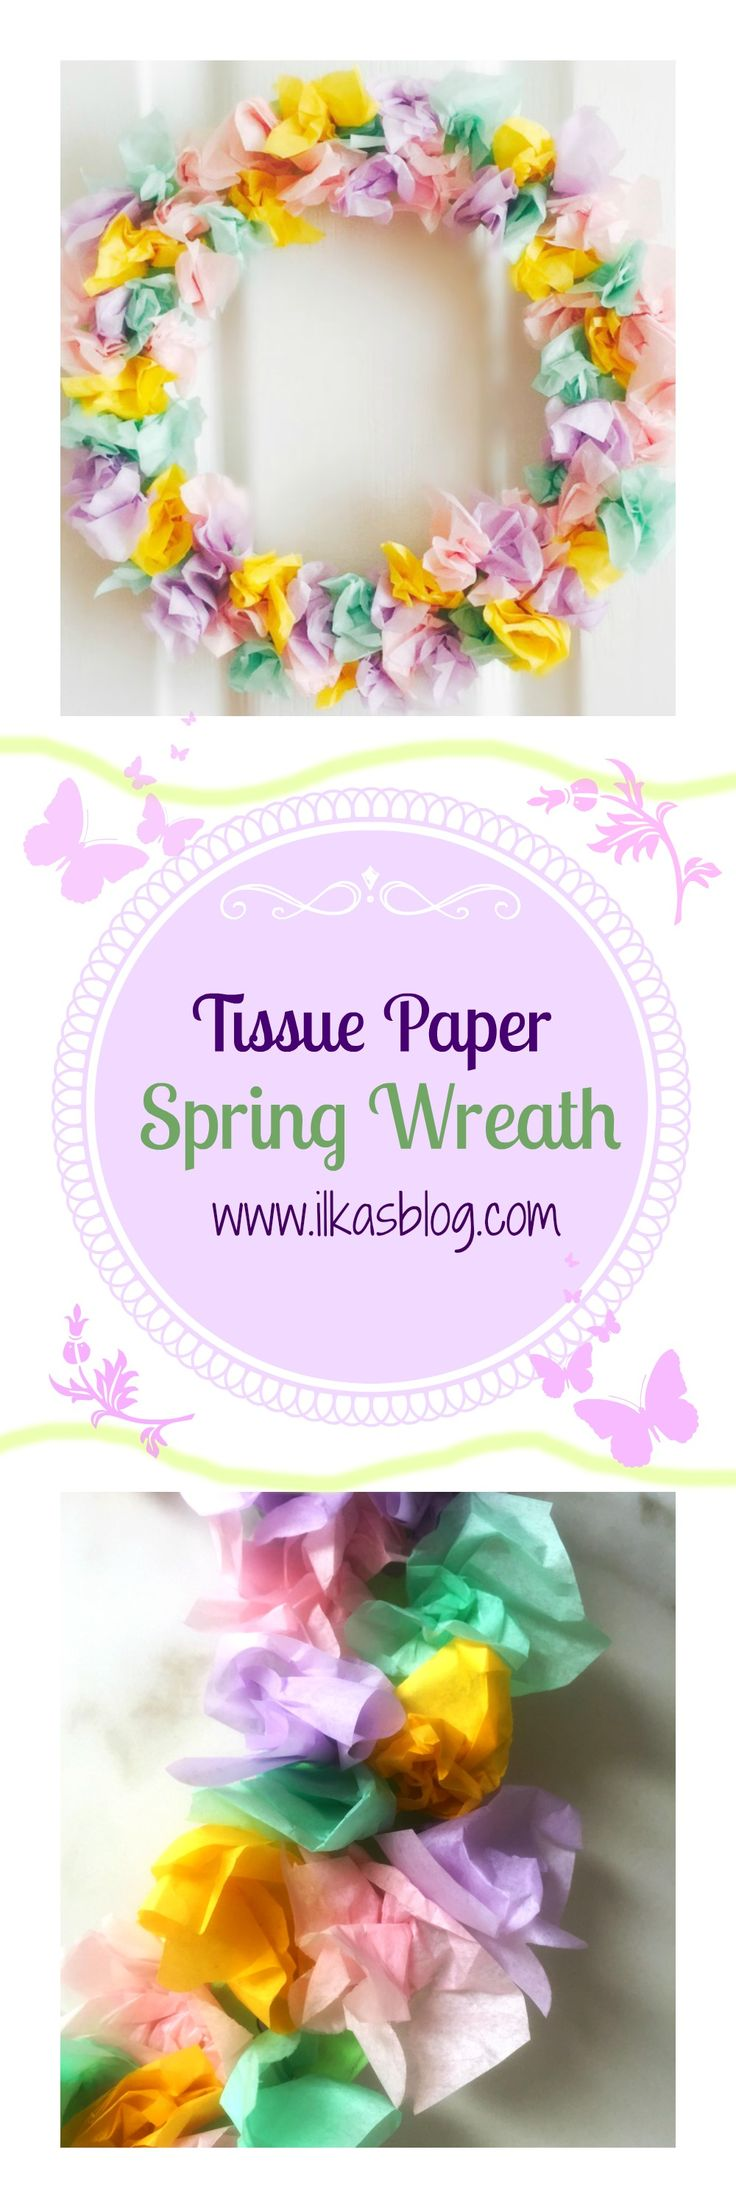 I love making crafts from tissue paper. They're easy, fast and fun. Even if you're not the world's greatest crafter you can  pretty much follow these instruction